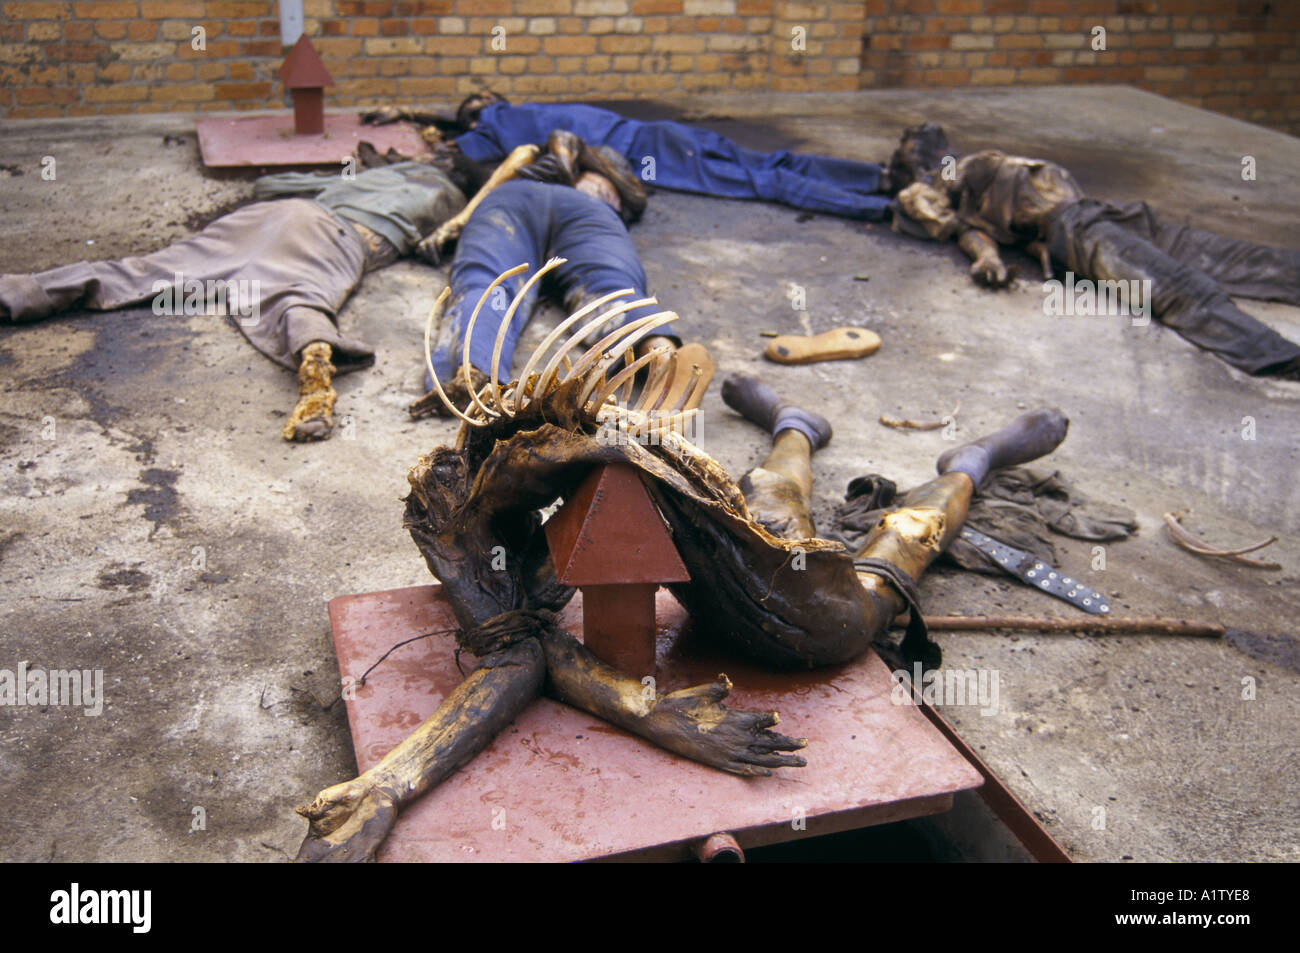 Kabgayi massacre site.TORTURED BODIES. RWANDA GENOCIDE.Dead Body with rib cage exposed and hands tied behind back.1994 - Stock Image